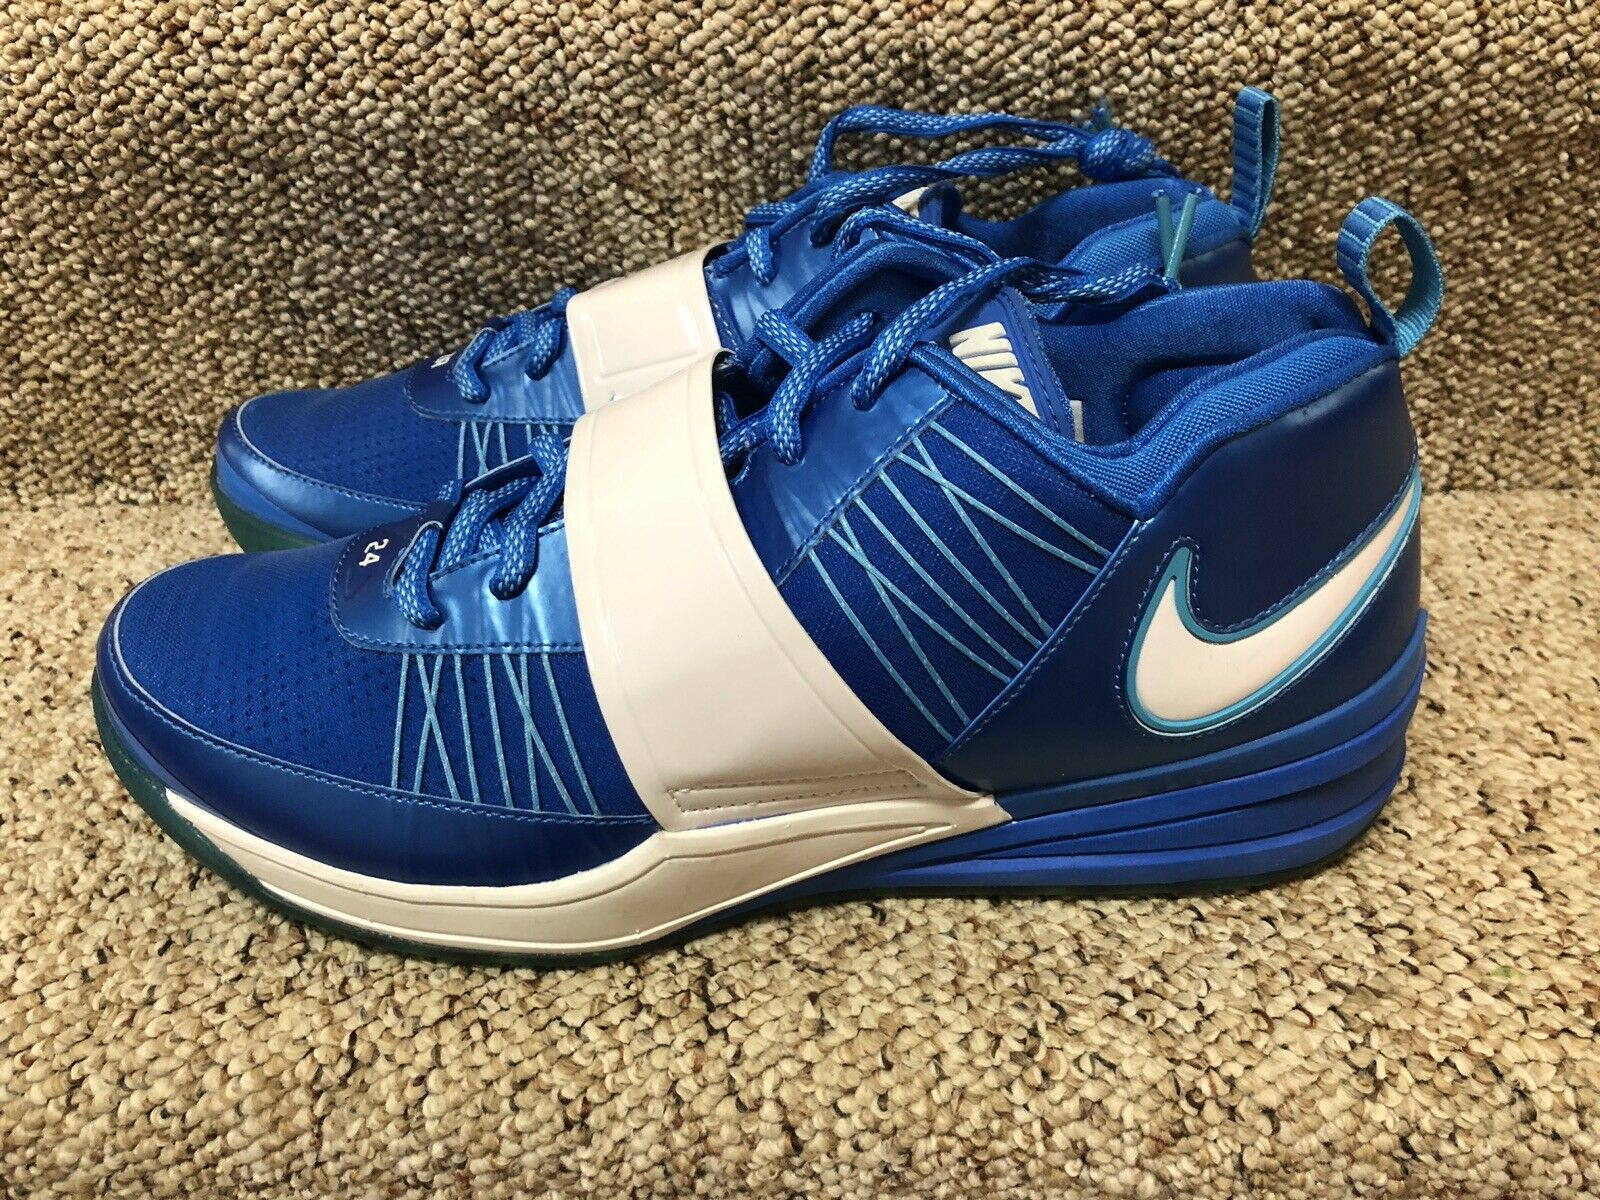 Nike Zoom Revis DS Size 12 QS Brand new Rare Photo bluee Cross Trainer